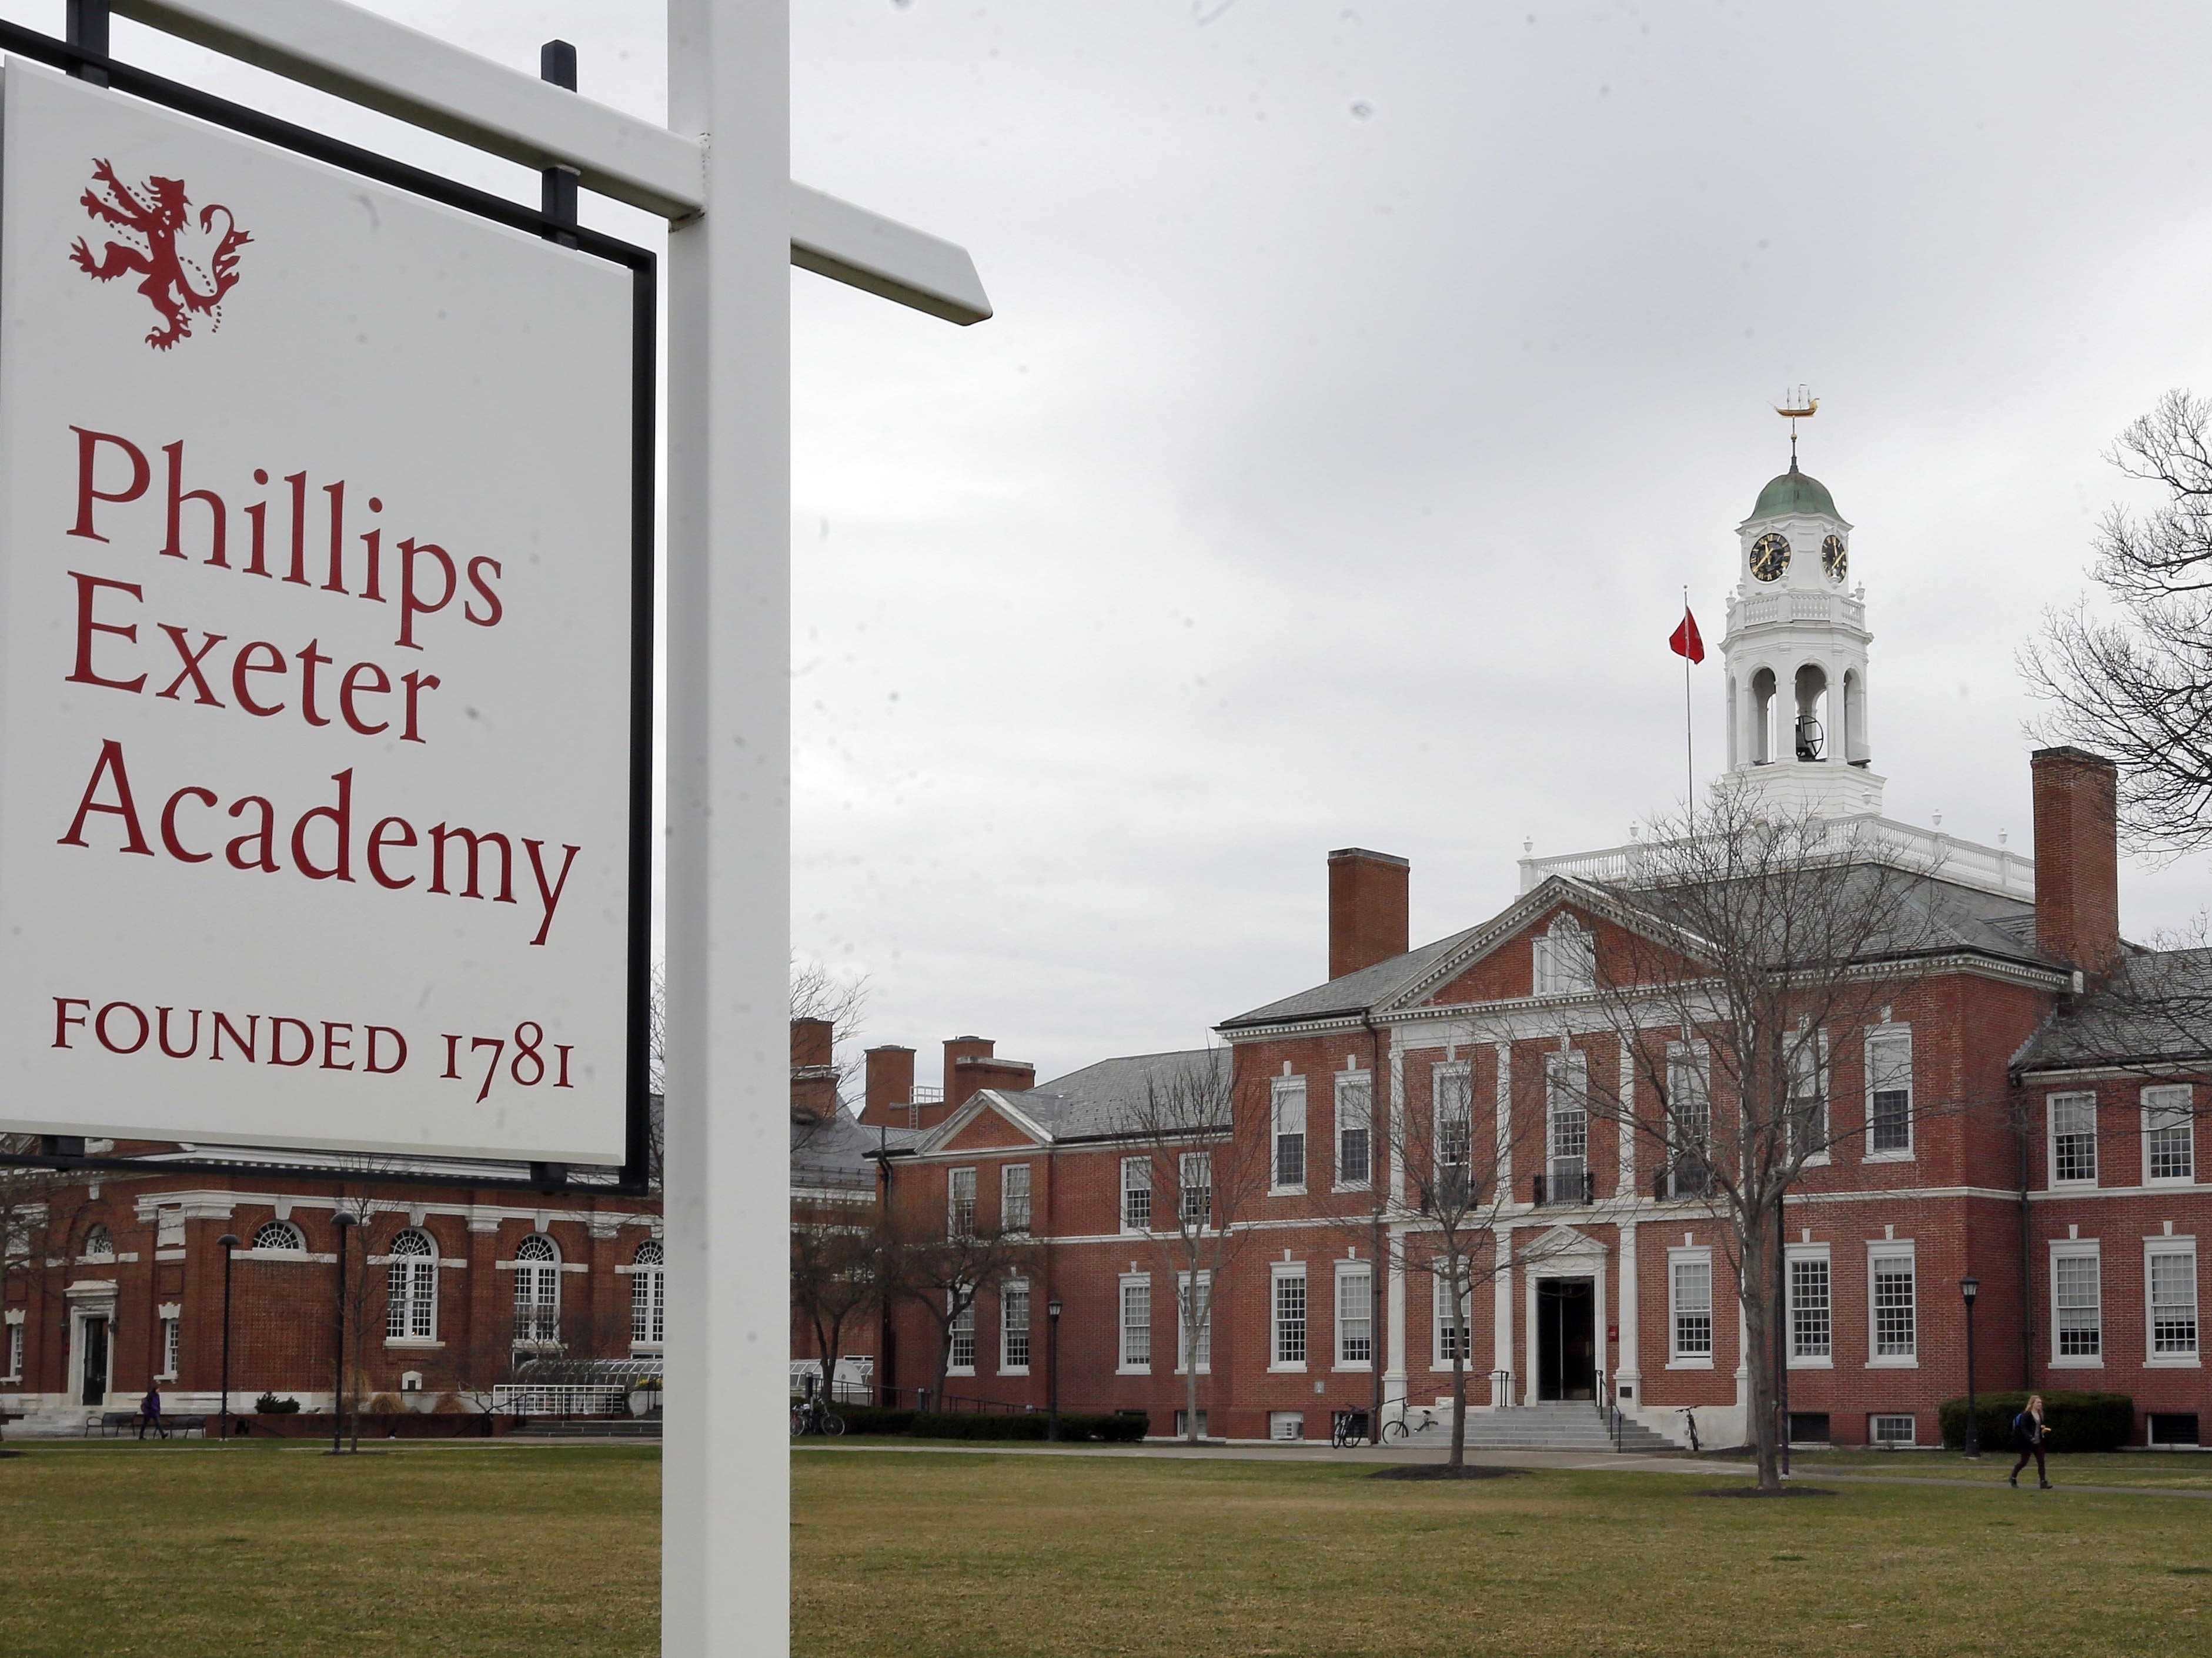 Prep School Faces Accusations Of Chronic Mishandling Of Sexual Assault Cases